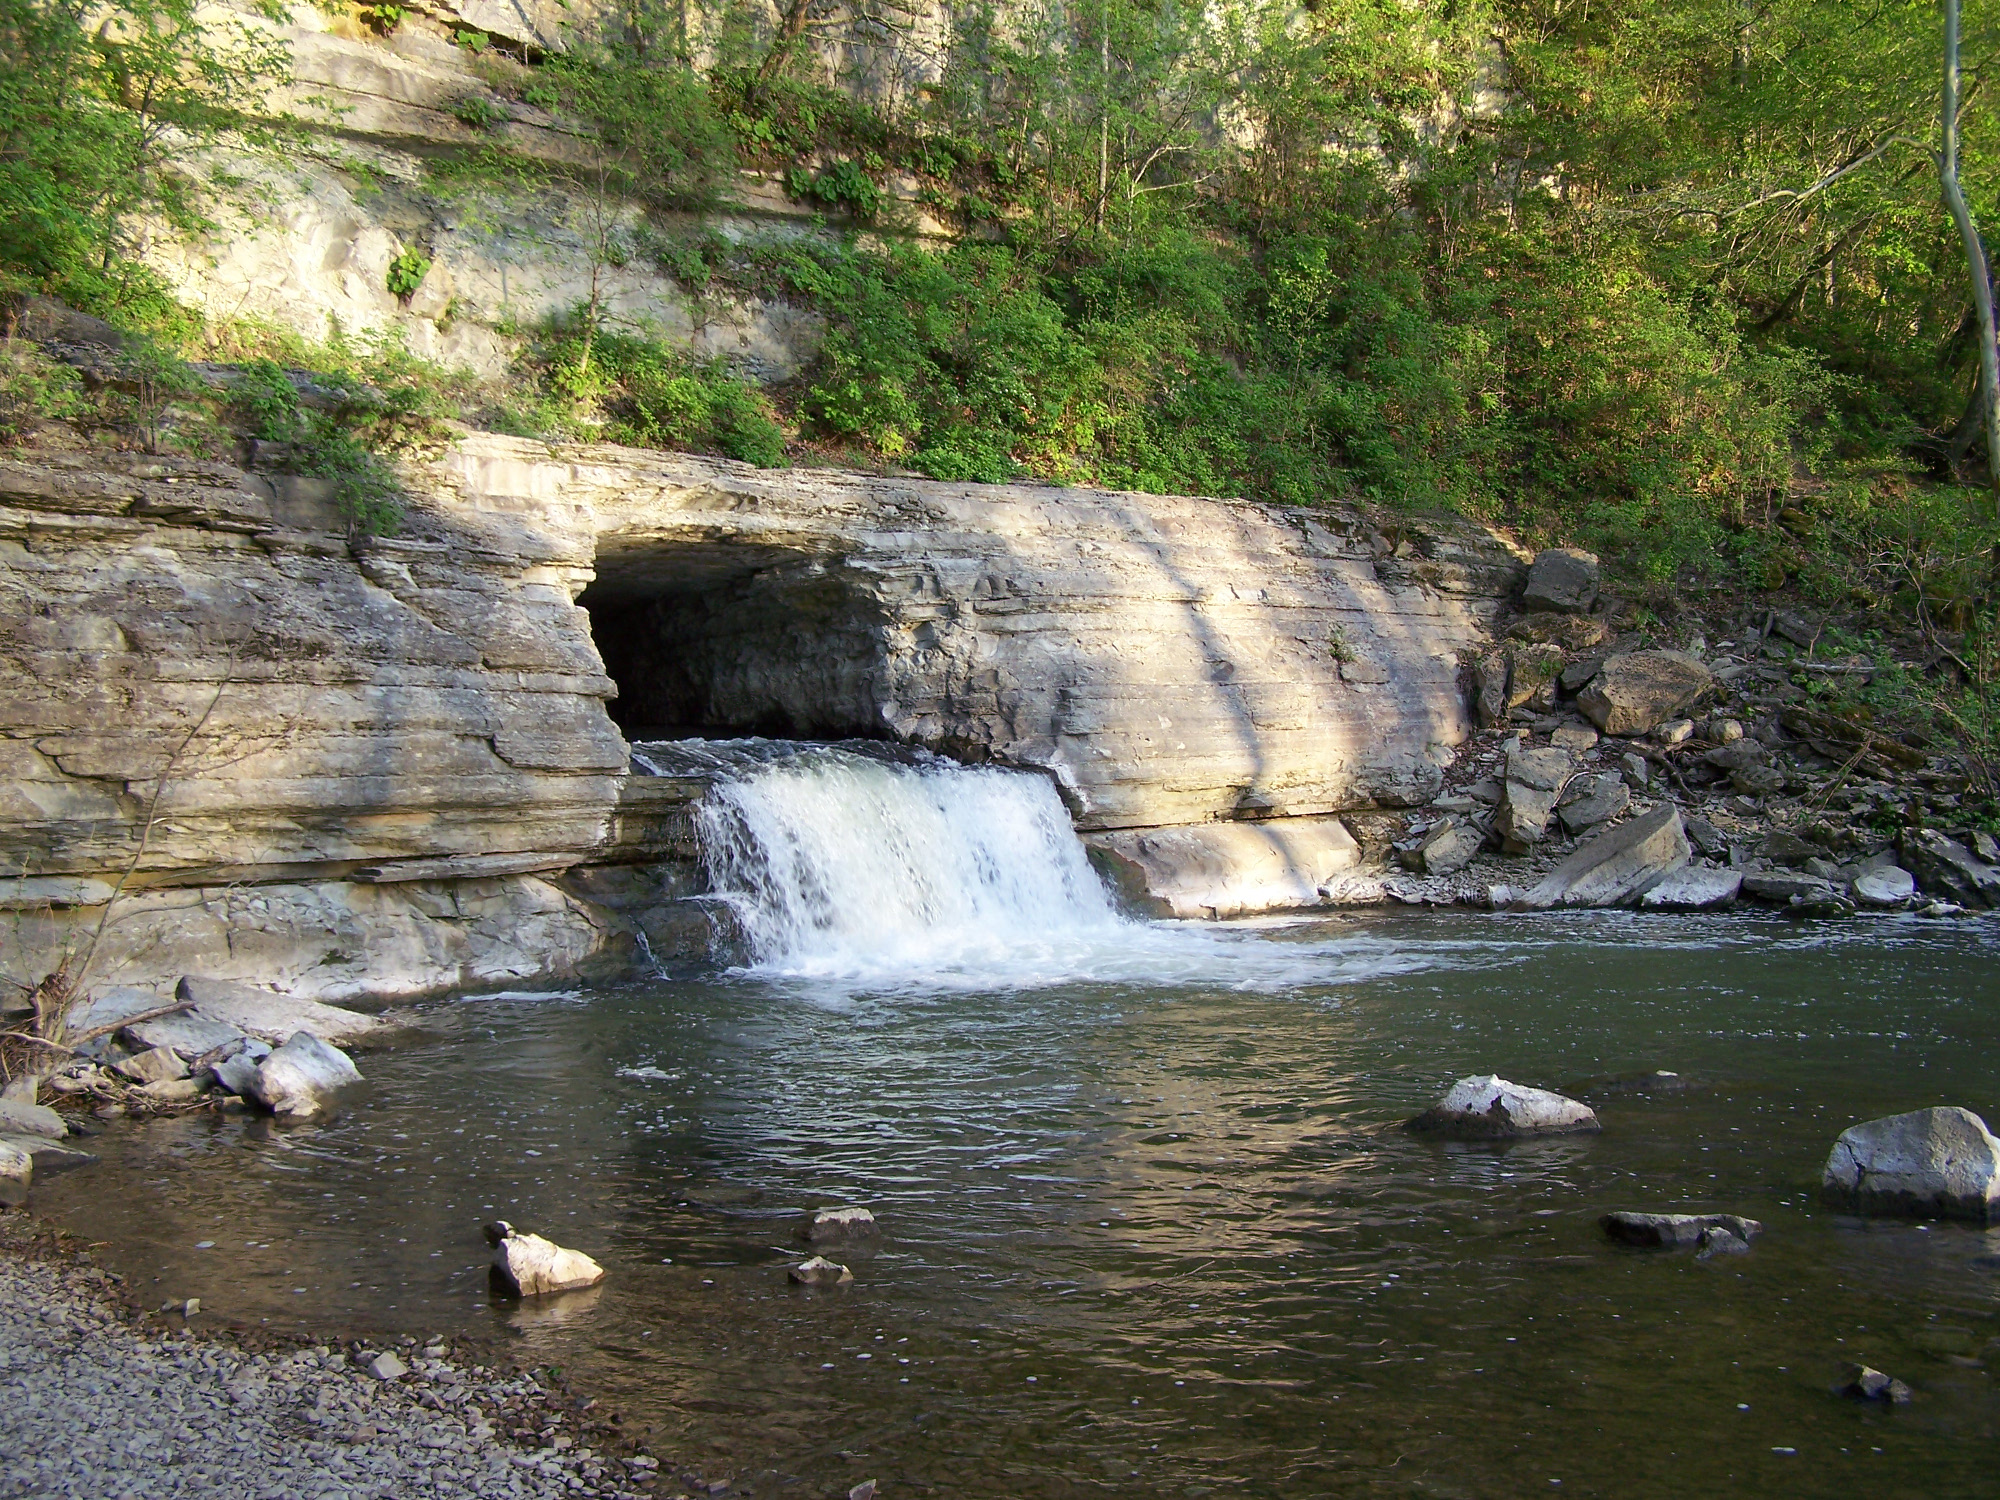 A rock cutout for the Harpeth river to flow. A river in Tennessee.